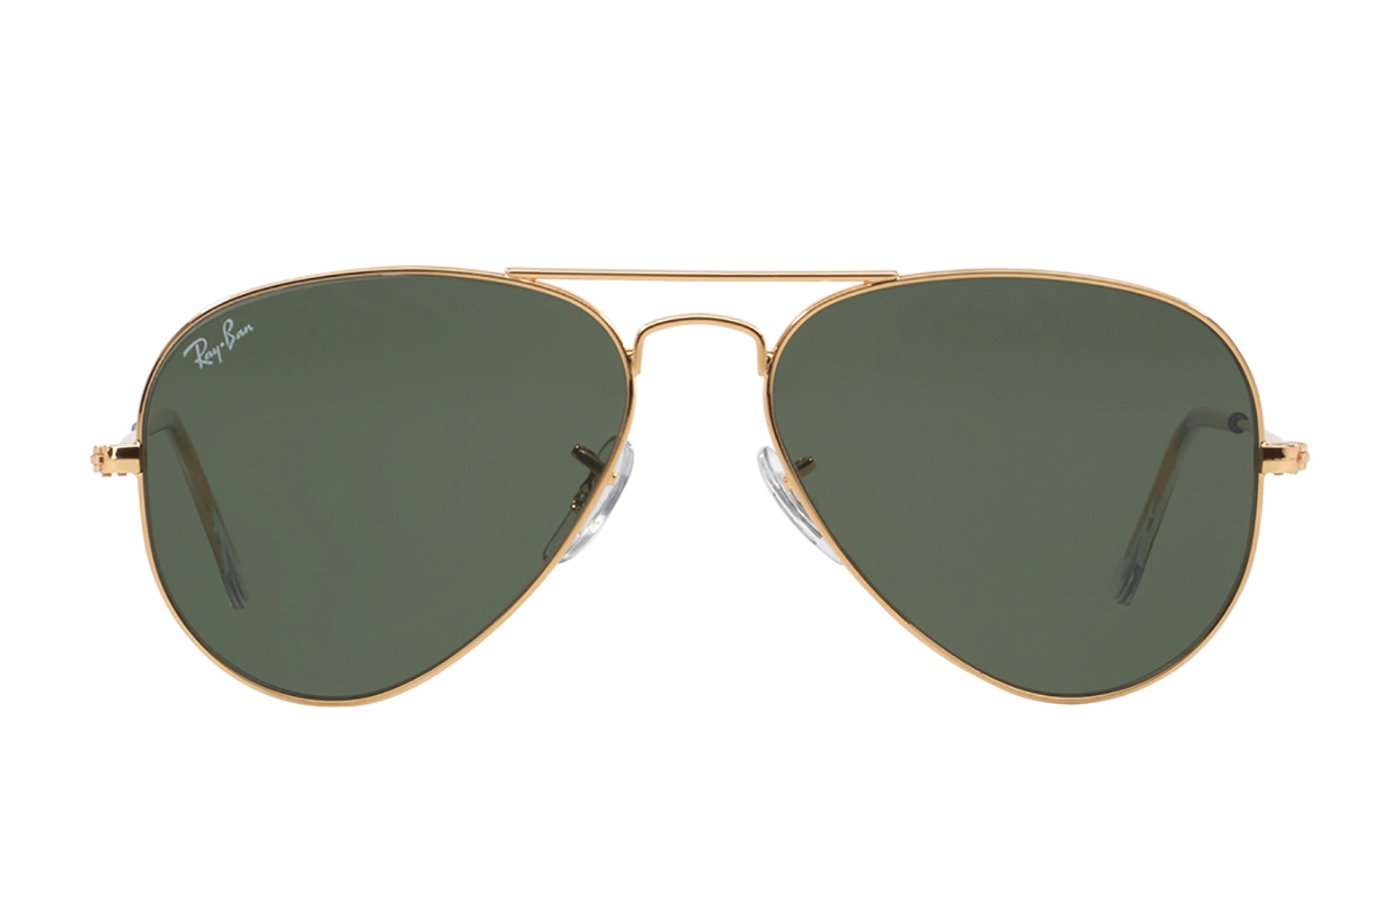 RAY-BAN AVIATOR LARGE METAL 0RB3025 55 W3234 GOLD